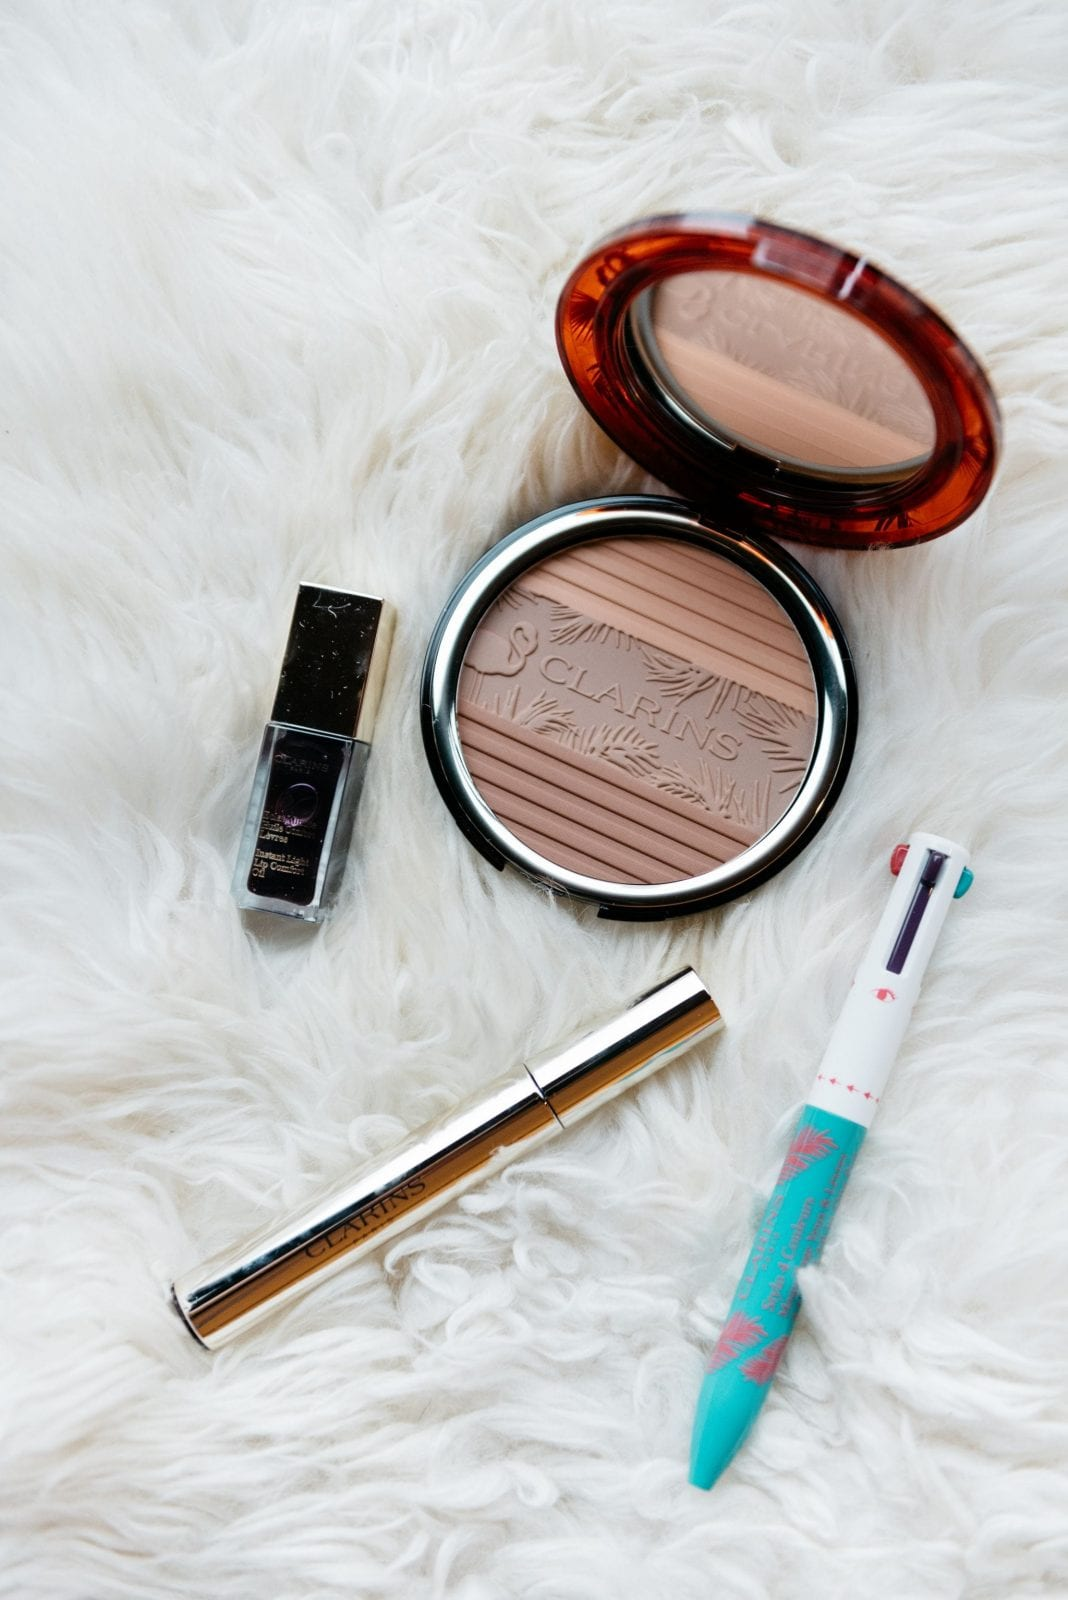 This is a photo of the Clarins Summer Collection including the bronzer, mascara, lip oil and eye pen.